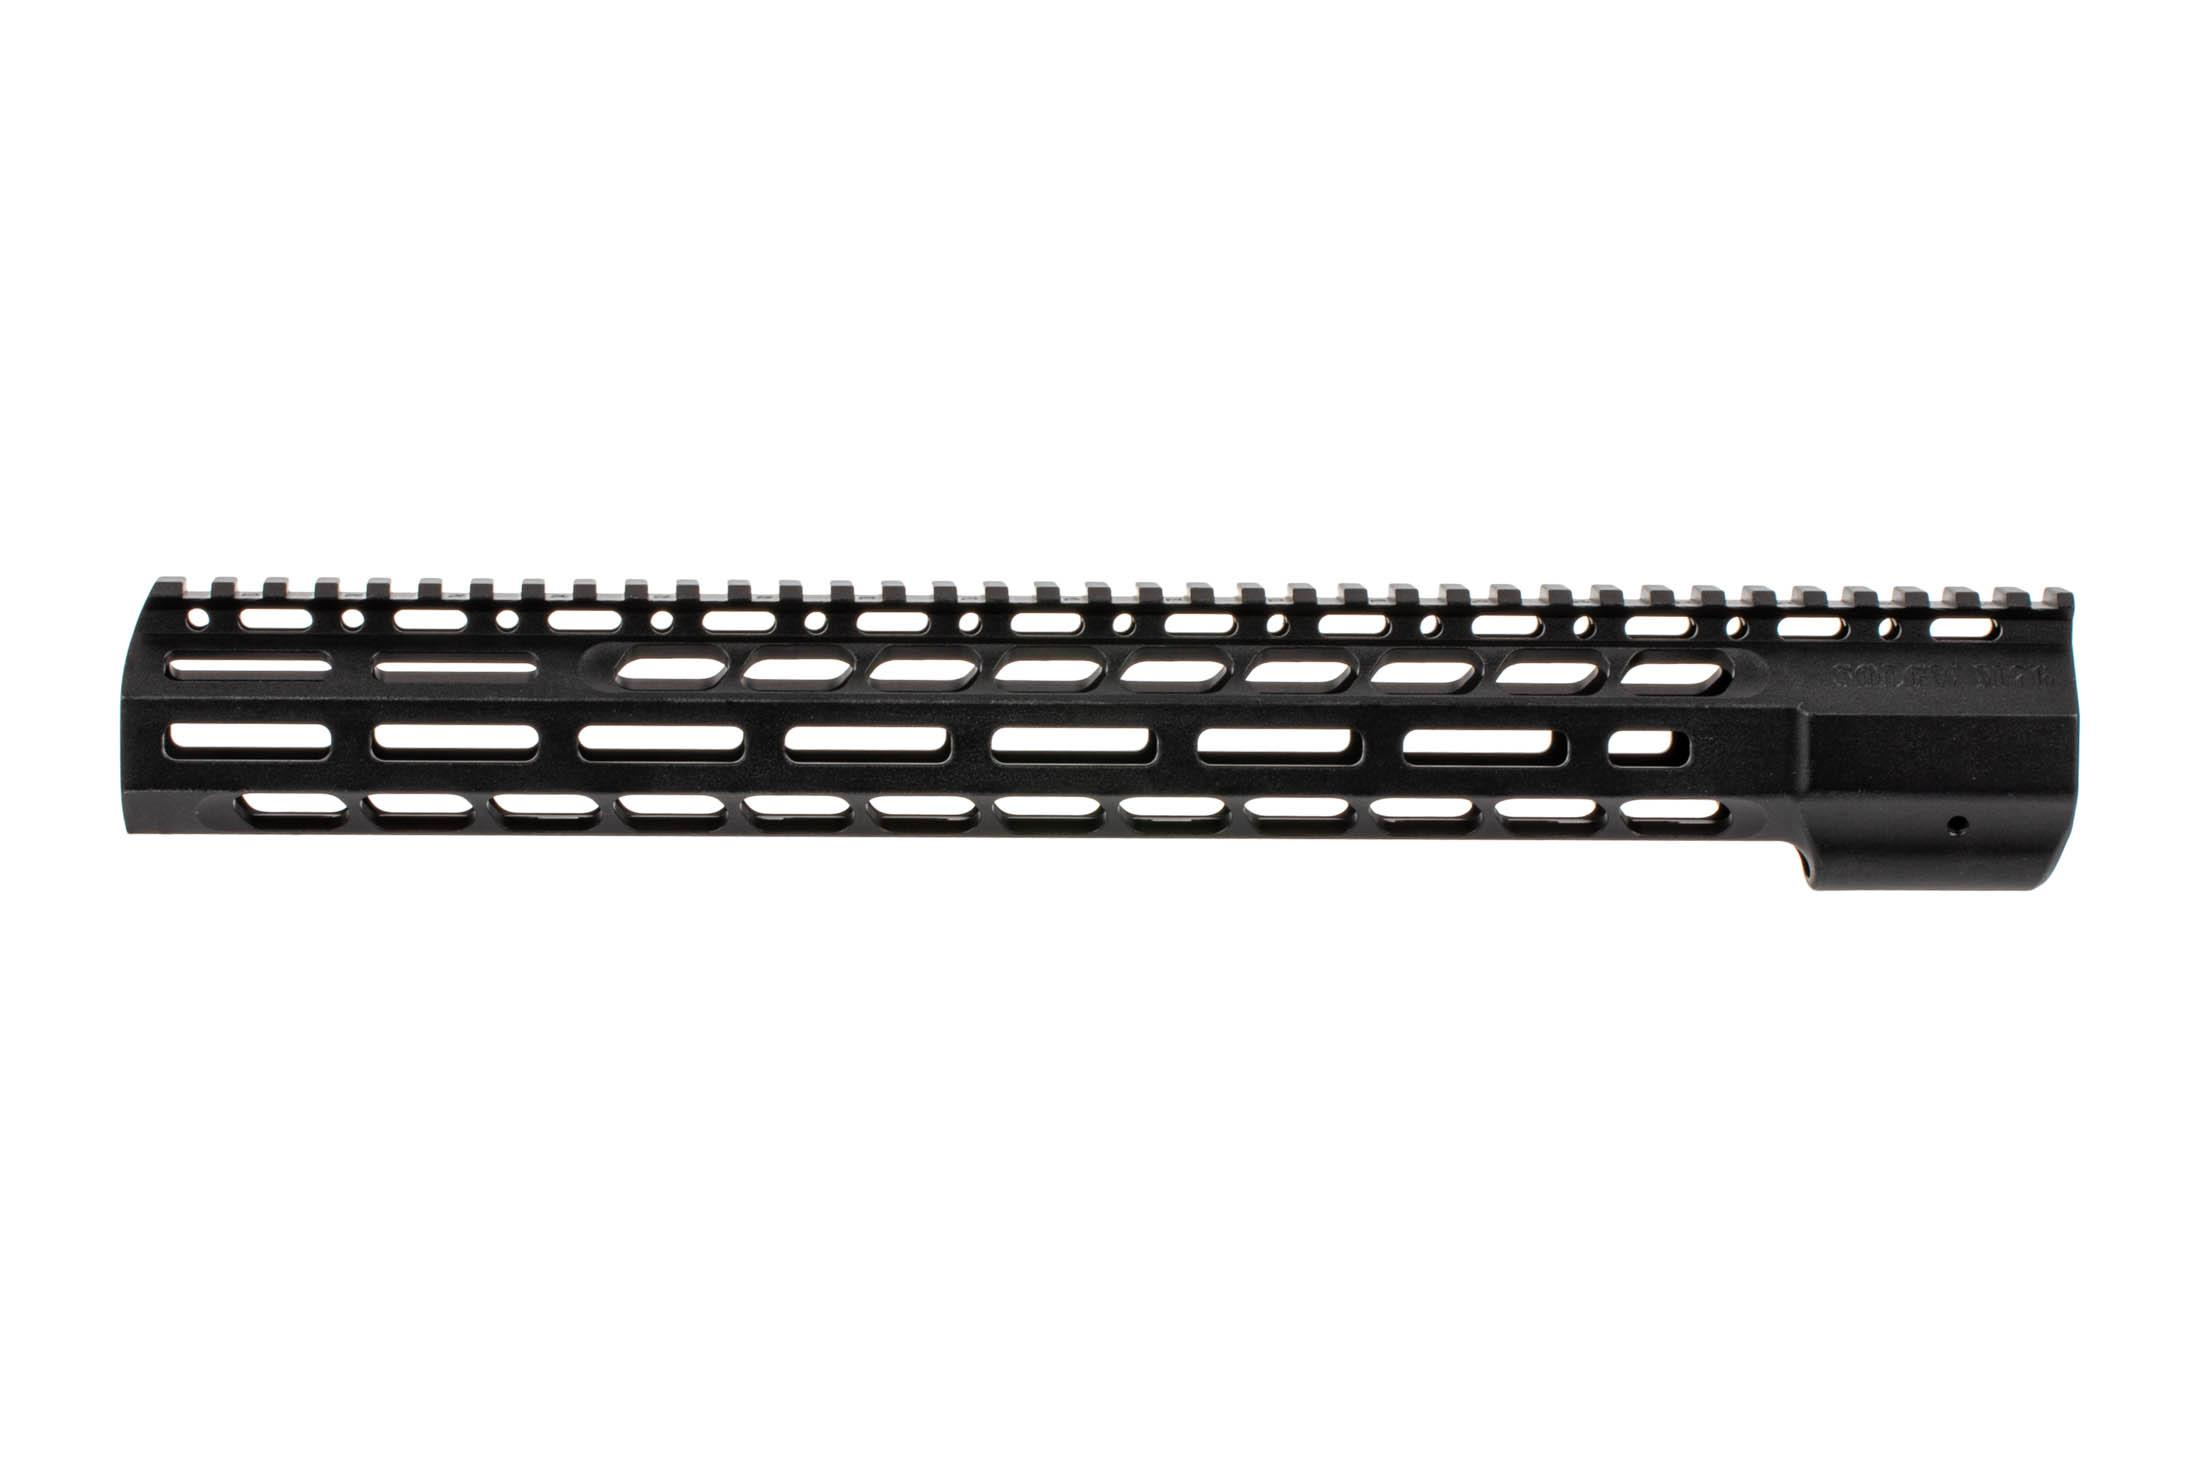 The Sons of Liberty Gun Works M76 free float handguard features a full length picatinny top rail